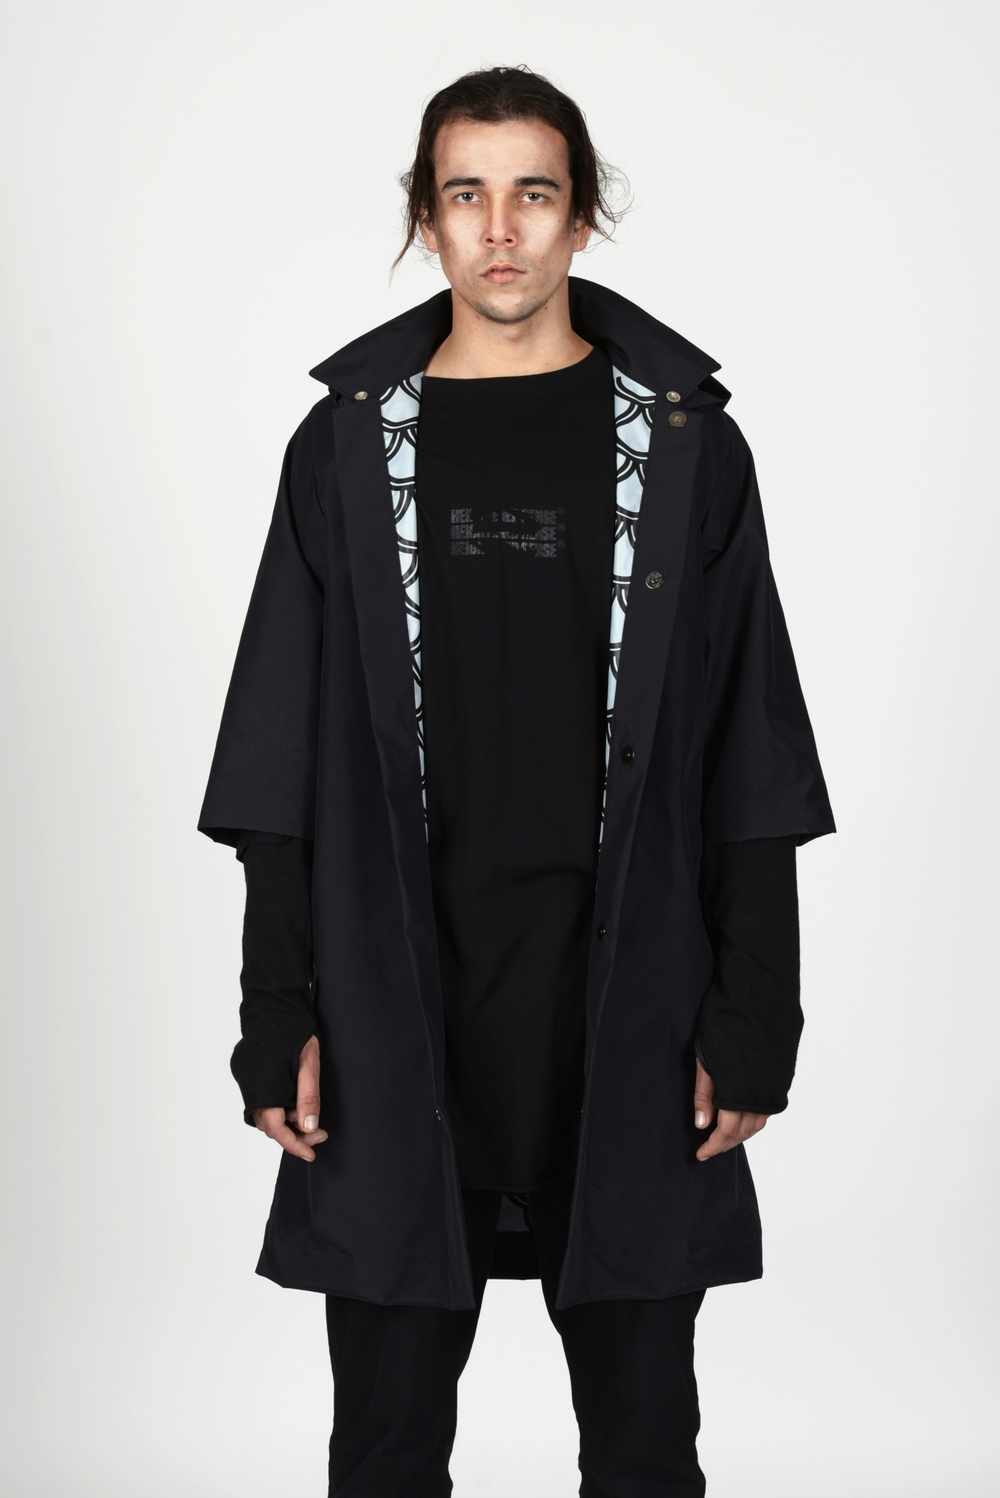 01 Heightened Sense Black Dragon Coat.jpg